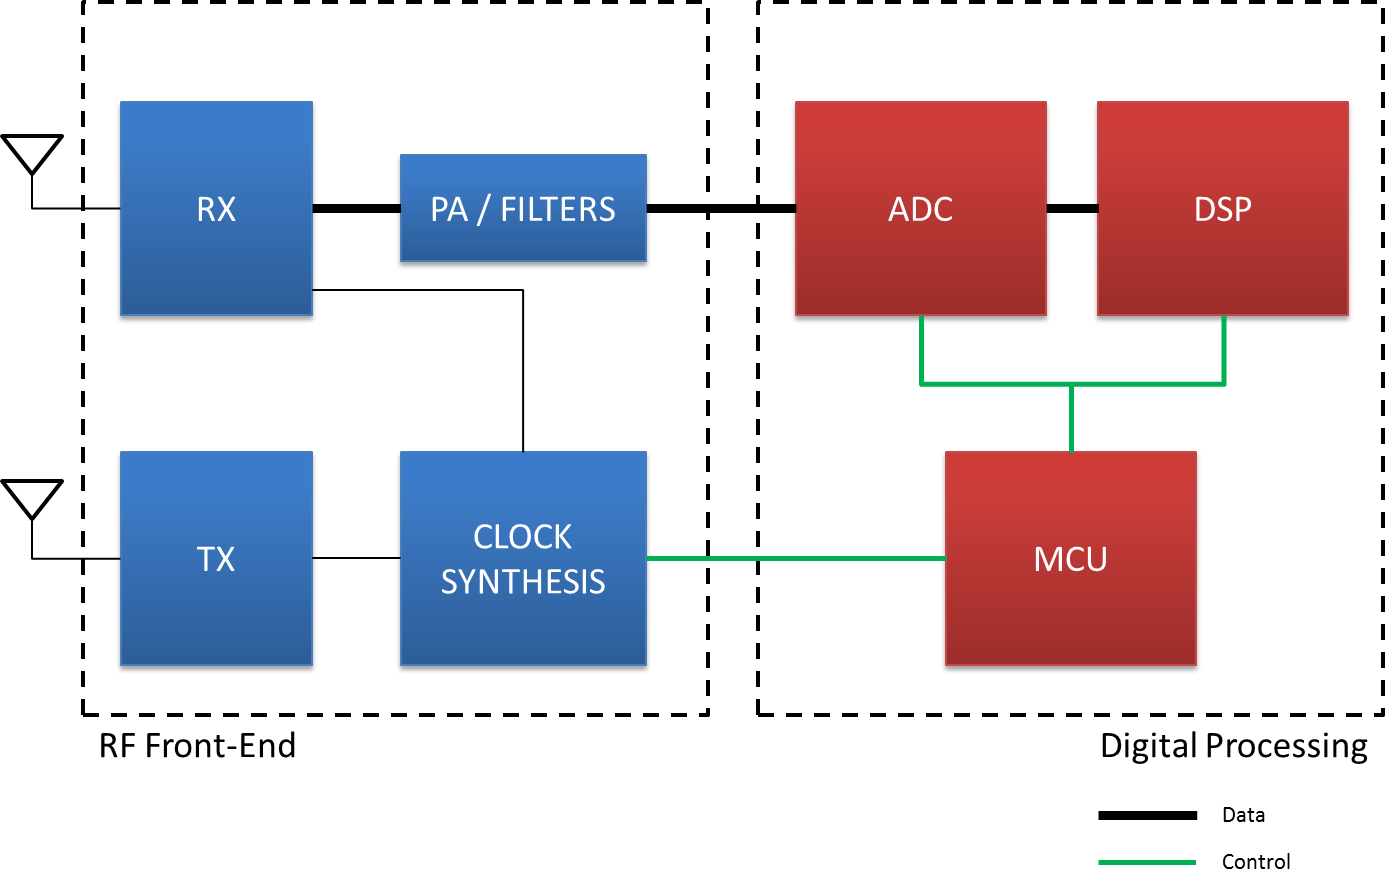 Bringing New Intelligence To Industrial Applications With Mmwave Electrical Wiring Diagram Automation Control Blog Making Sure That The System Can Each Component Optimally For Changing Conditions And Application Needs Requires A Great Deal Of Software Design